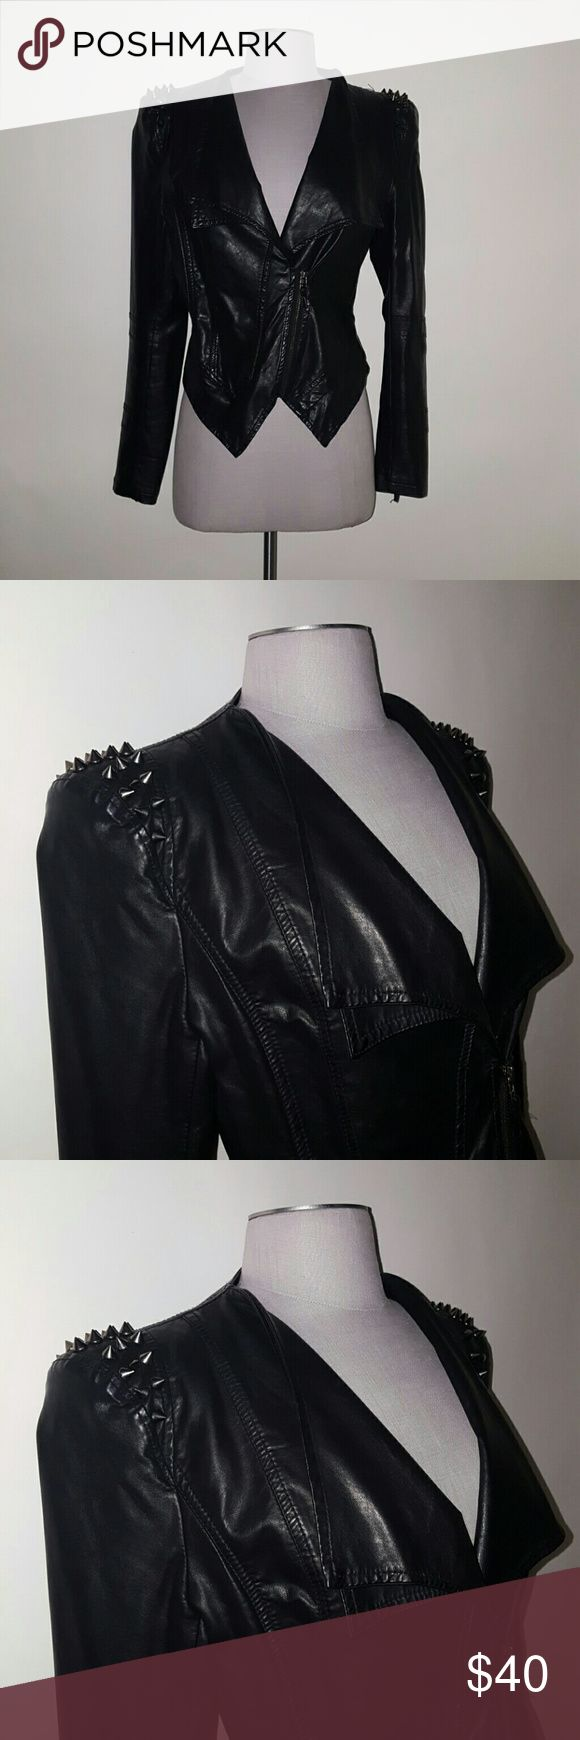 PU Spiked Leather Jacket PU leather jacket with silver spikes on shoulders. Can be worn opened for casual look or closed to reveal blazer style. Jackets & Coats